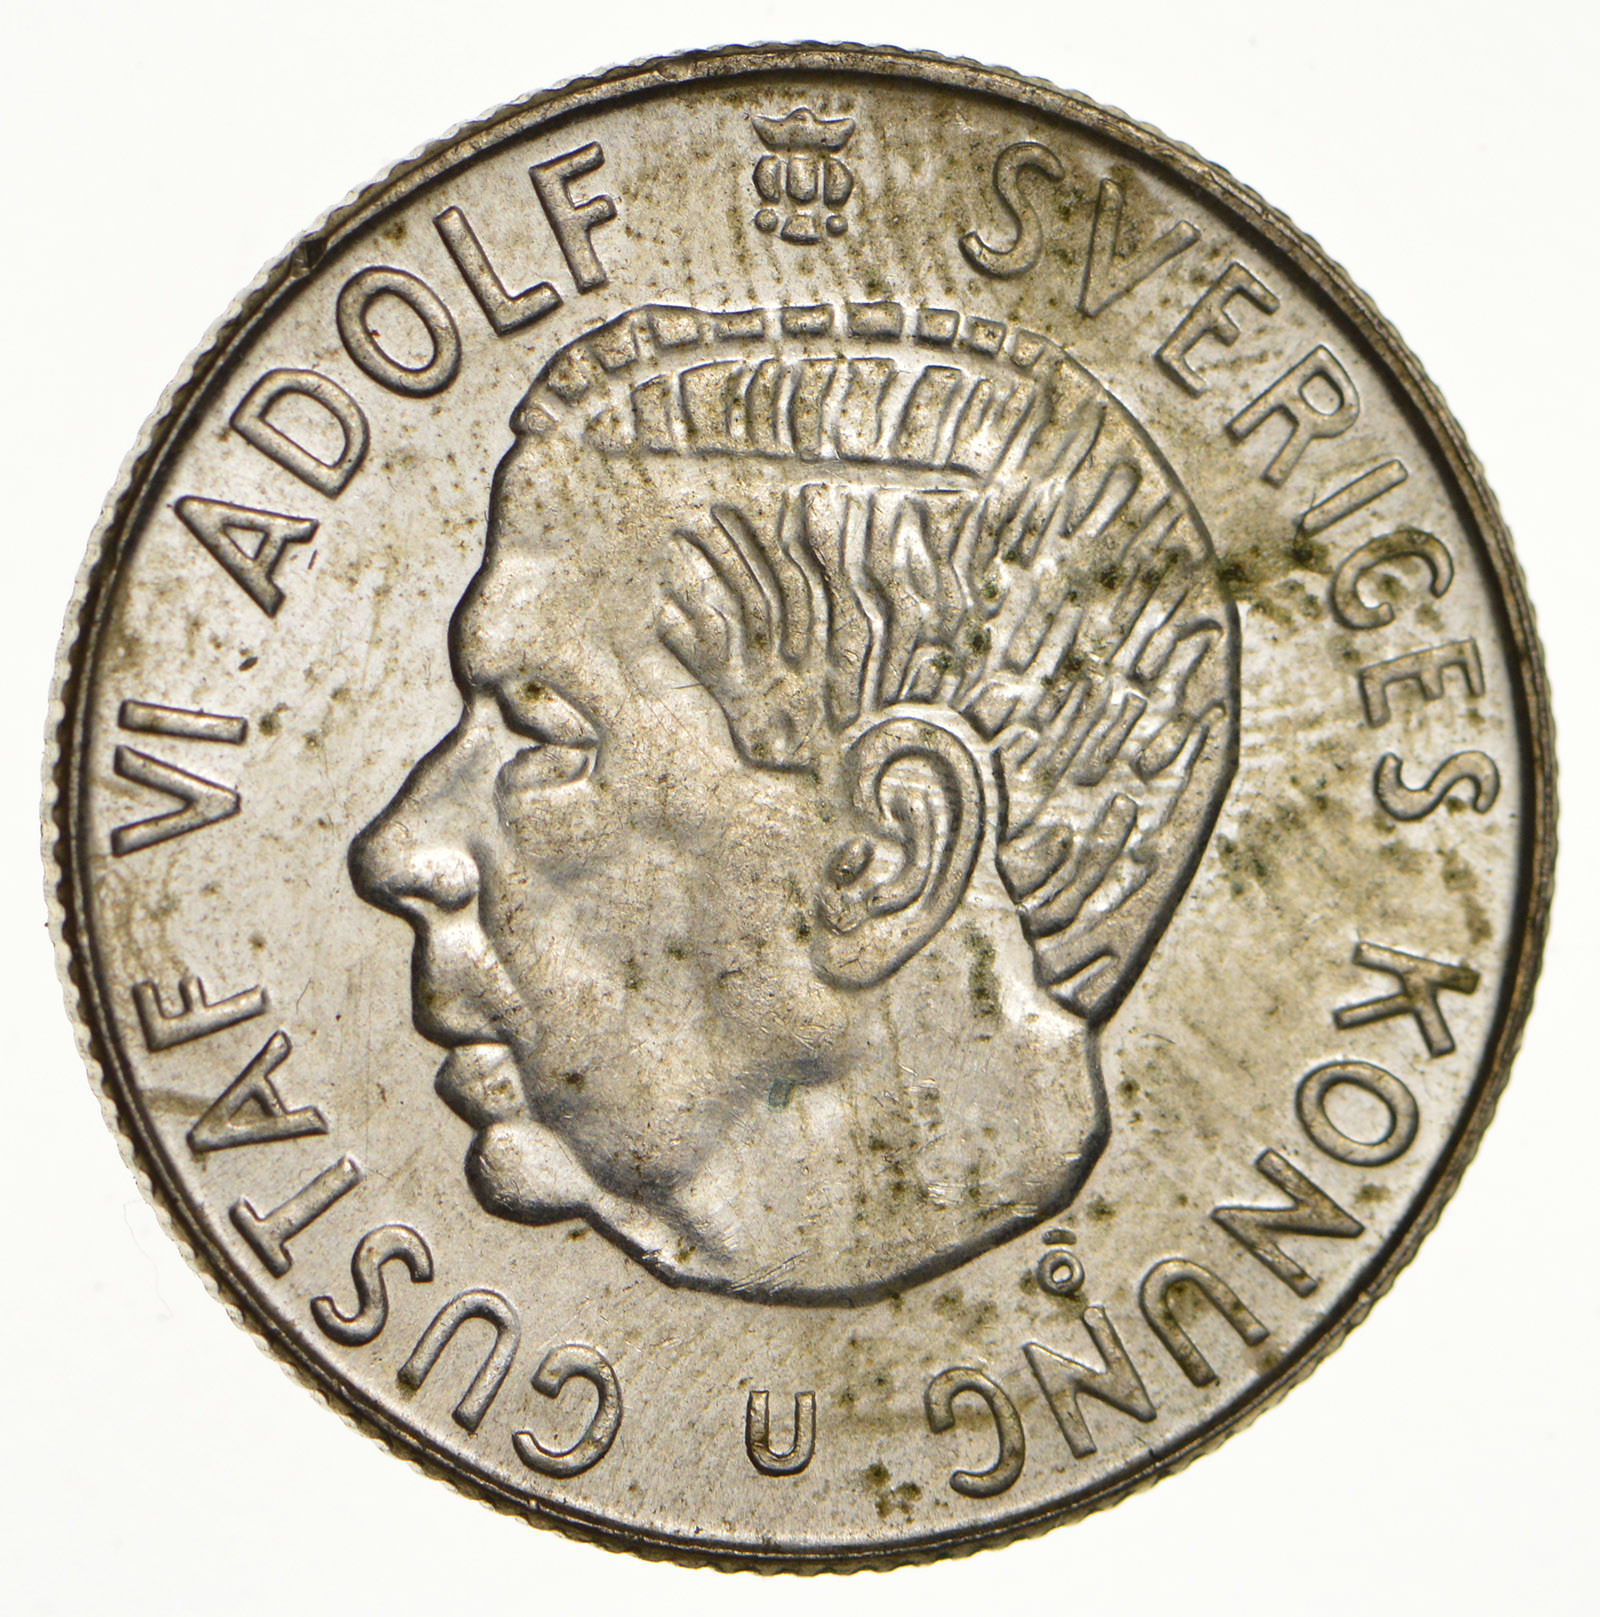 SILVER - Roughly the Size of a Quarter - 1963 Sweden 1 ...